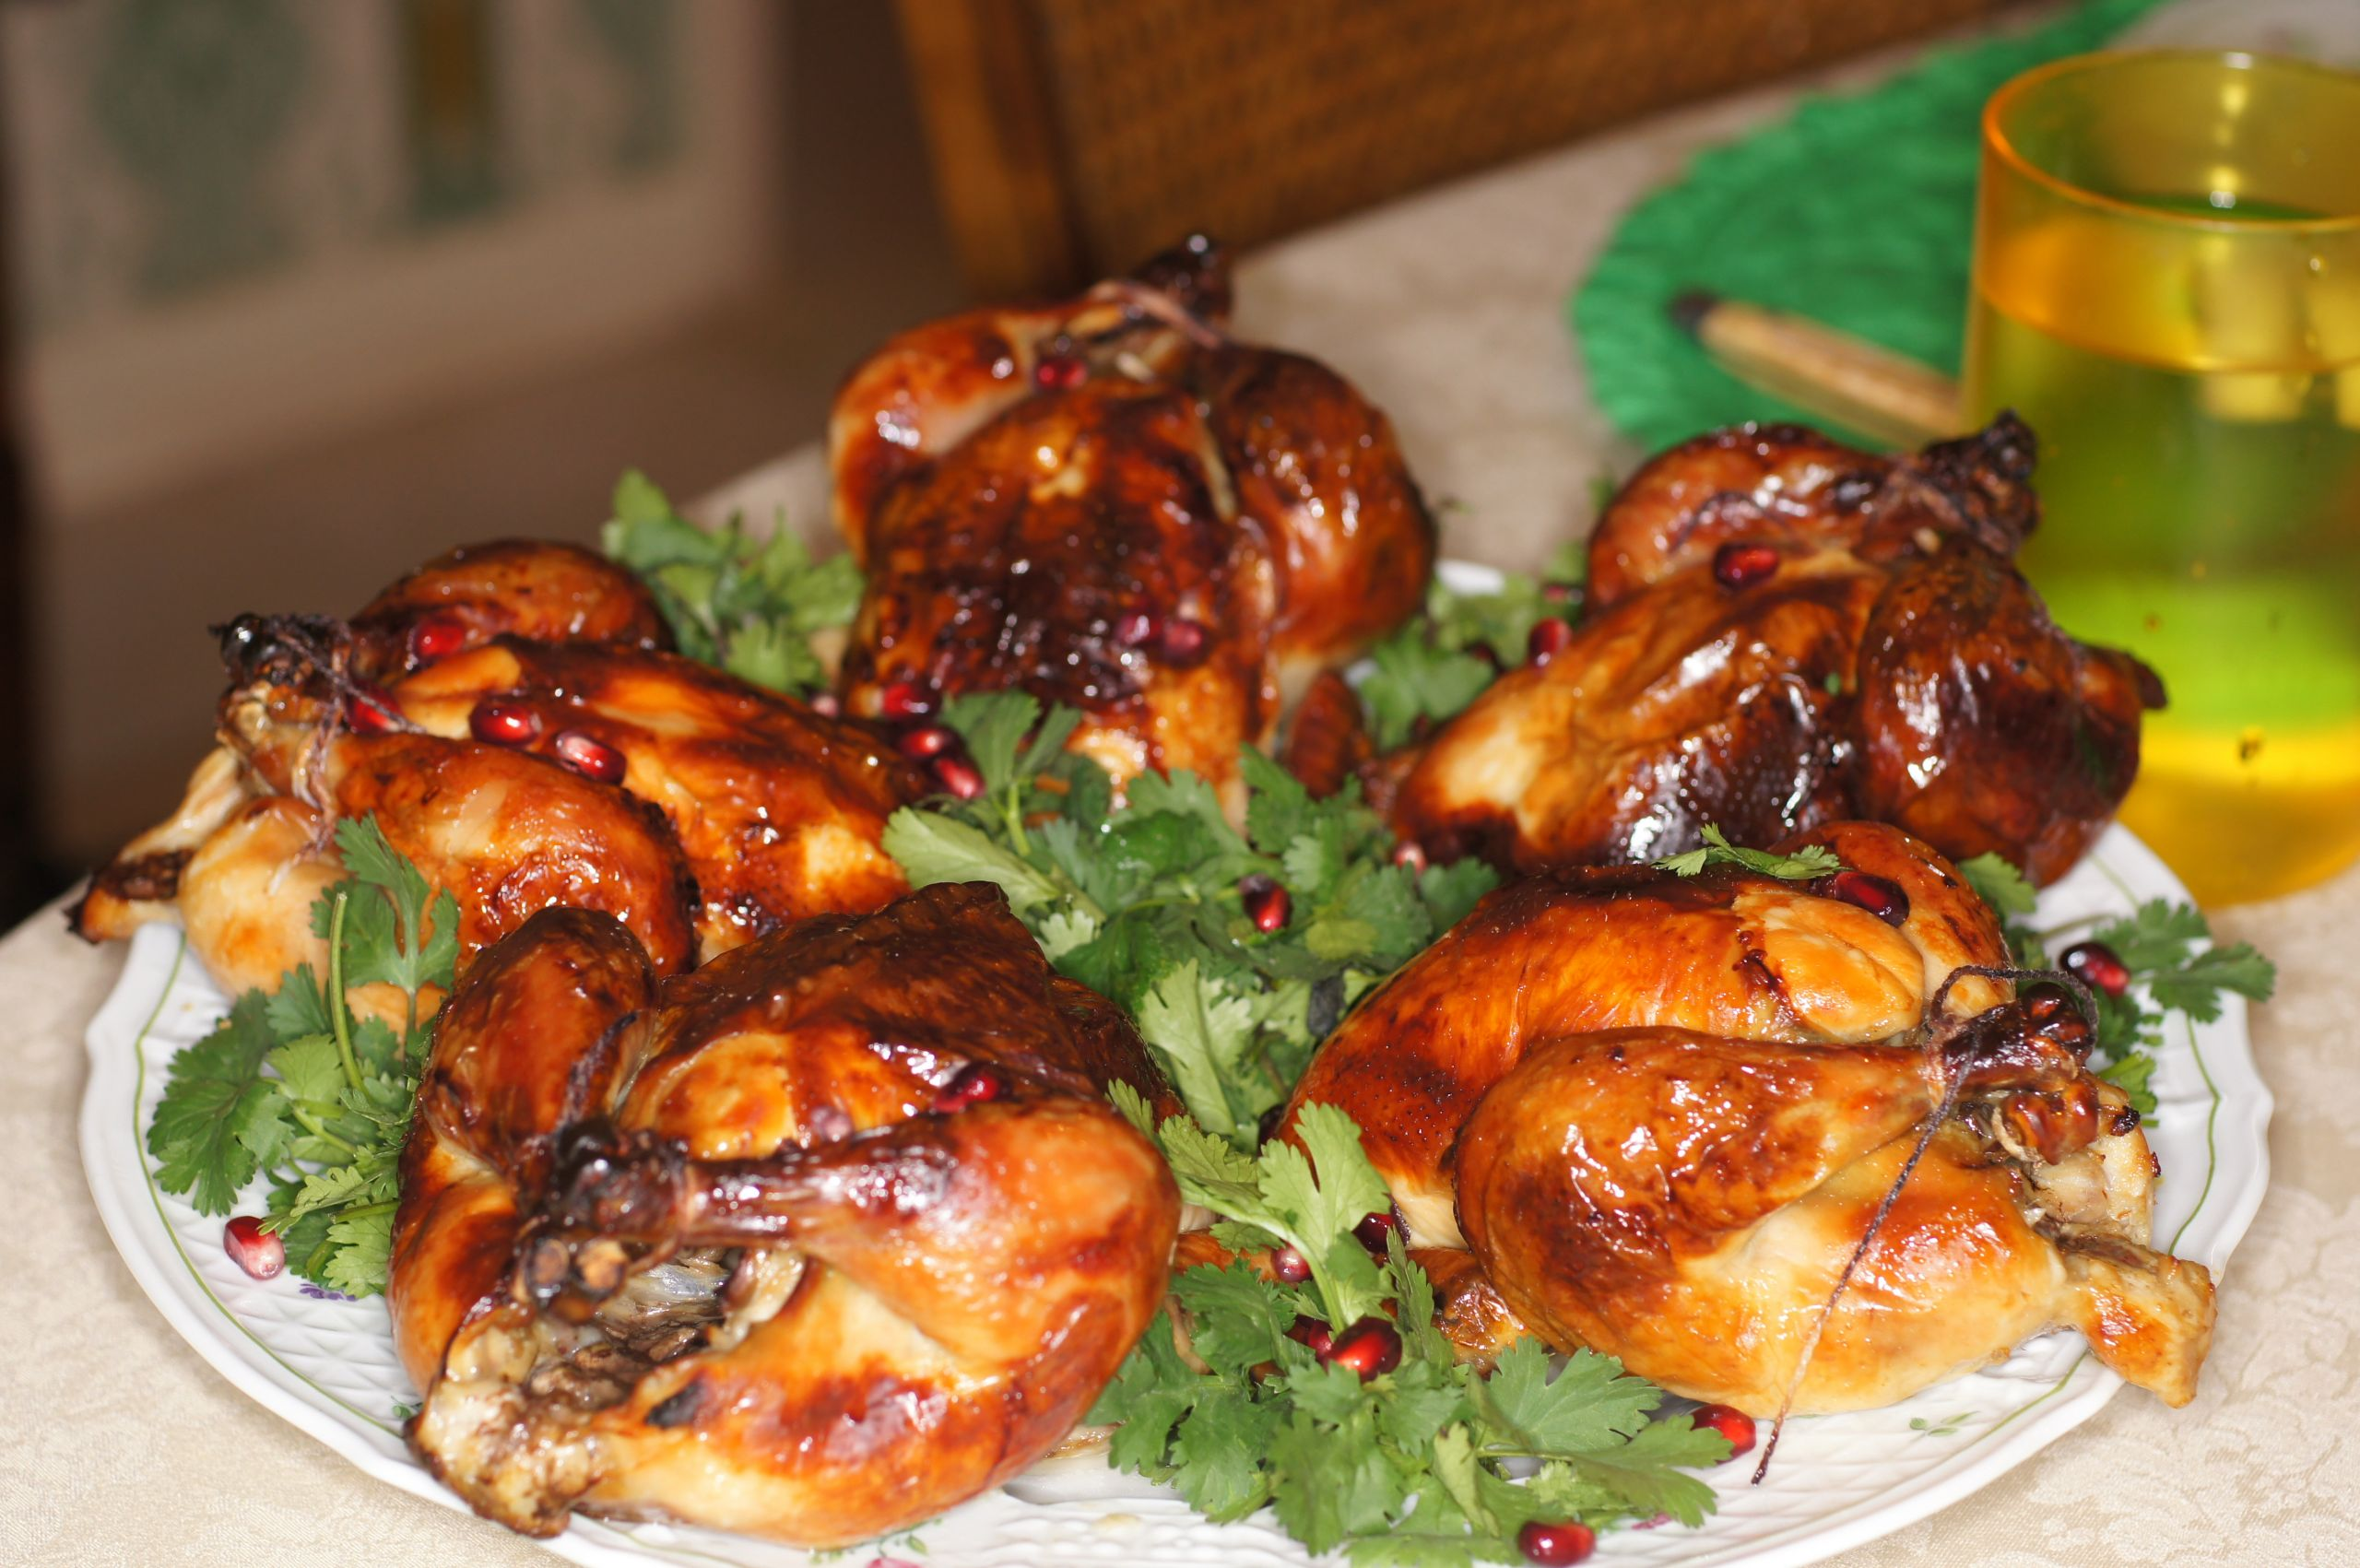 Recipes Cornish Game Hens  Roasted Brined Cornish Game Hens with Pomegranate Sauce